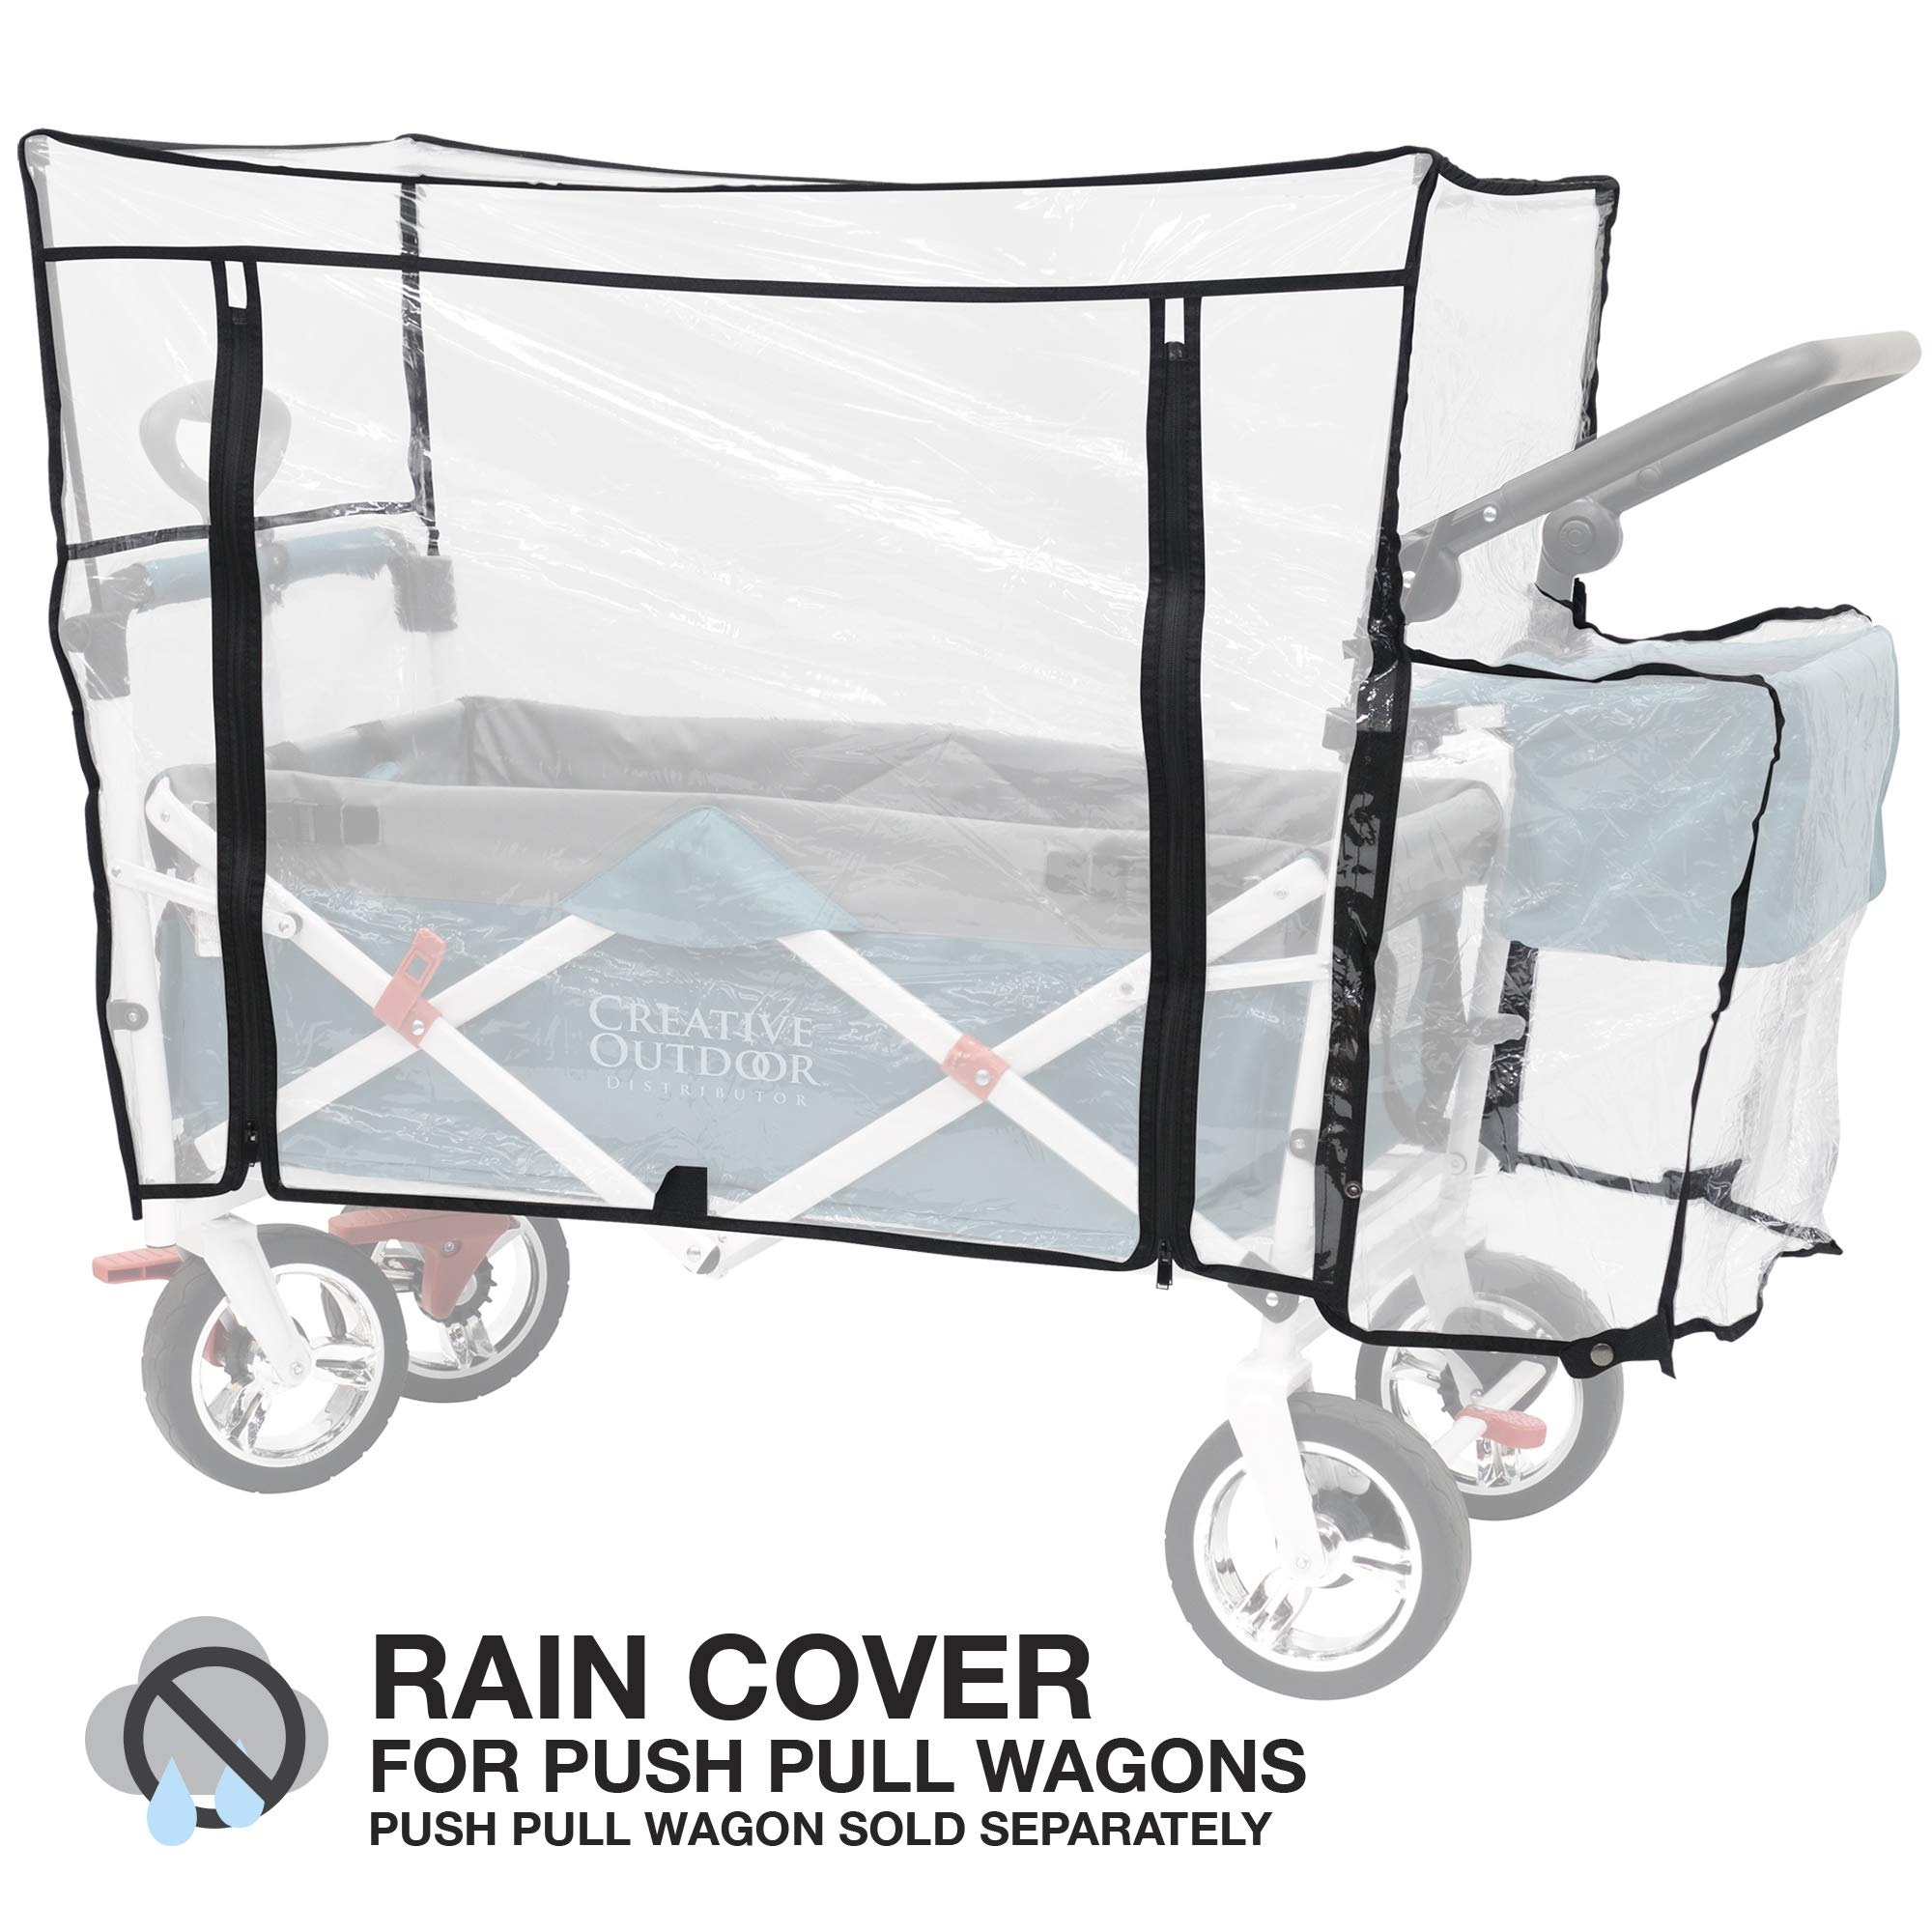 Creative Outdoor Distributor 999592 Push Pull Folding Wagon Rain Cover, Clear by Creative Outdoor Distributor